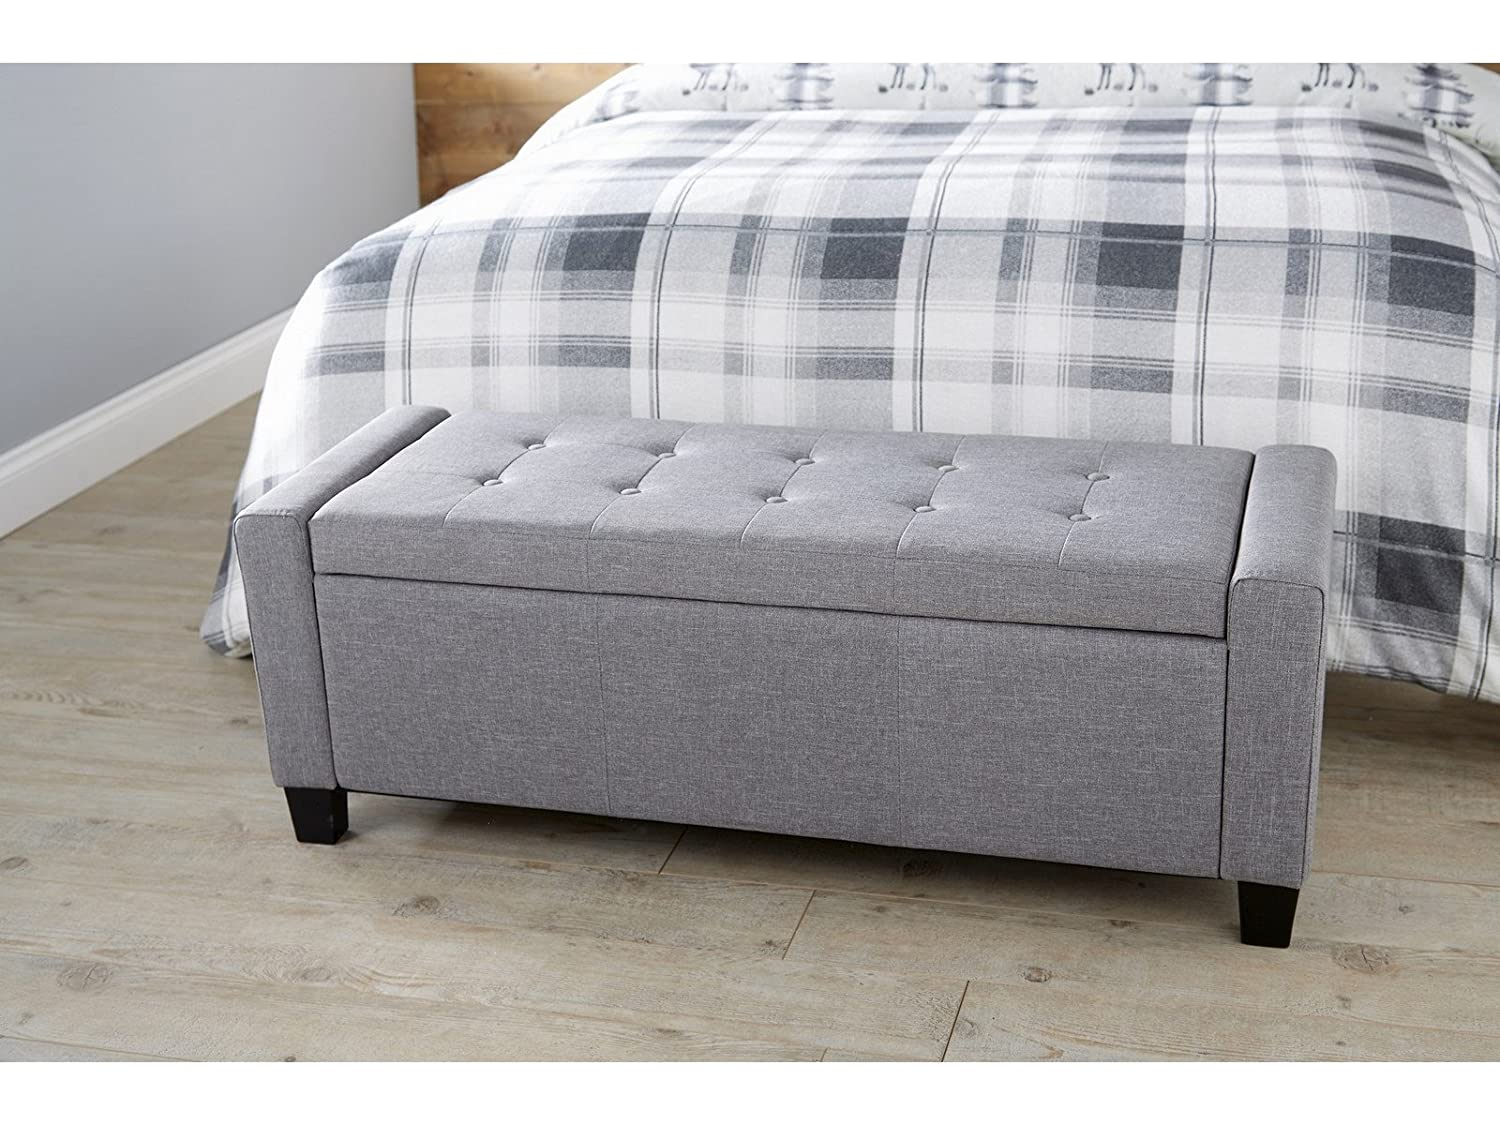 ip better ottoman storage homes grayson com with bench and gardens walmart